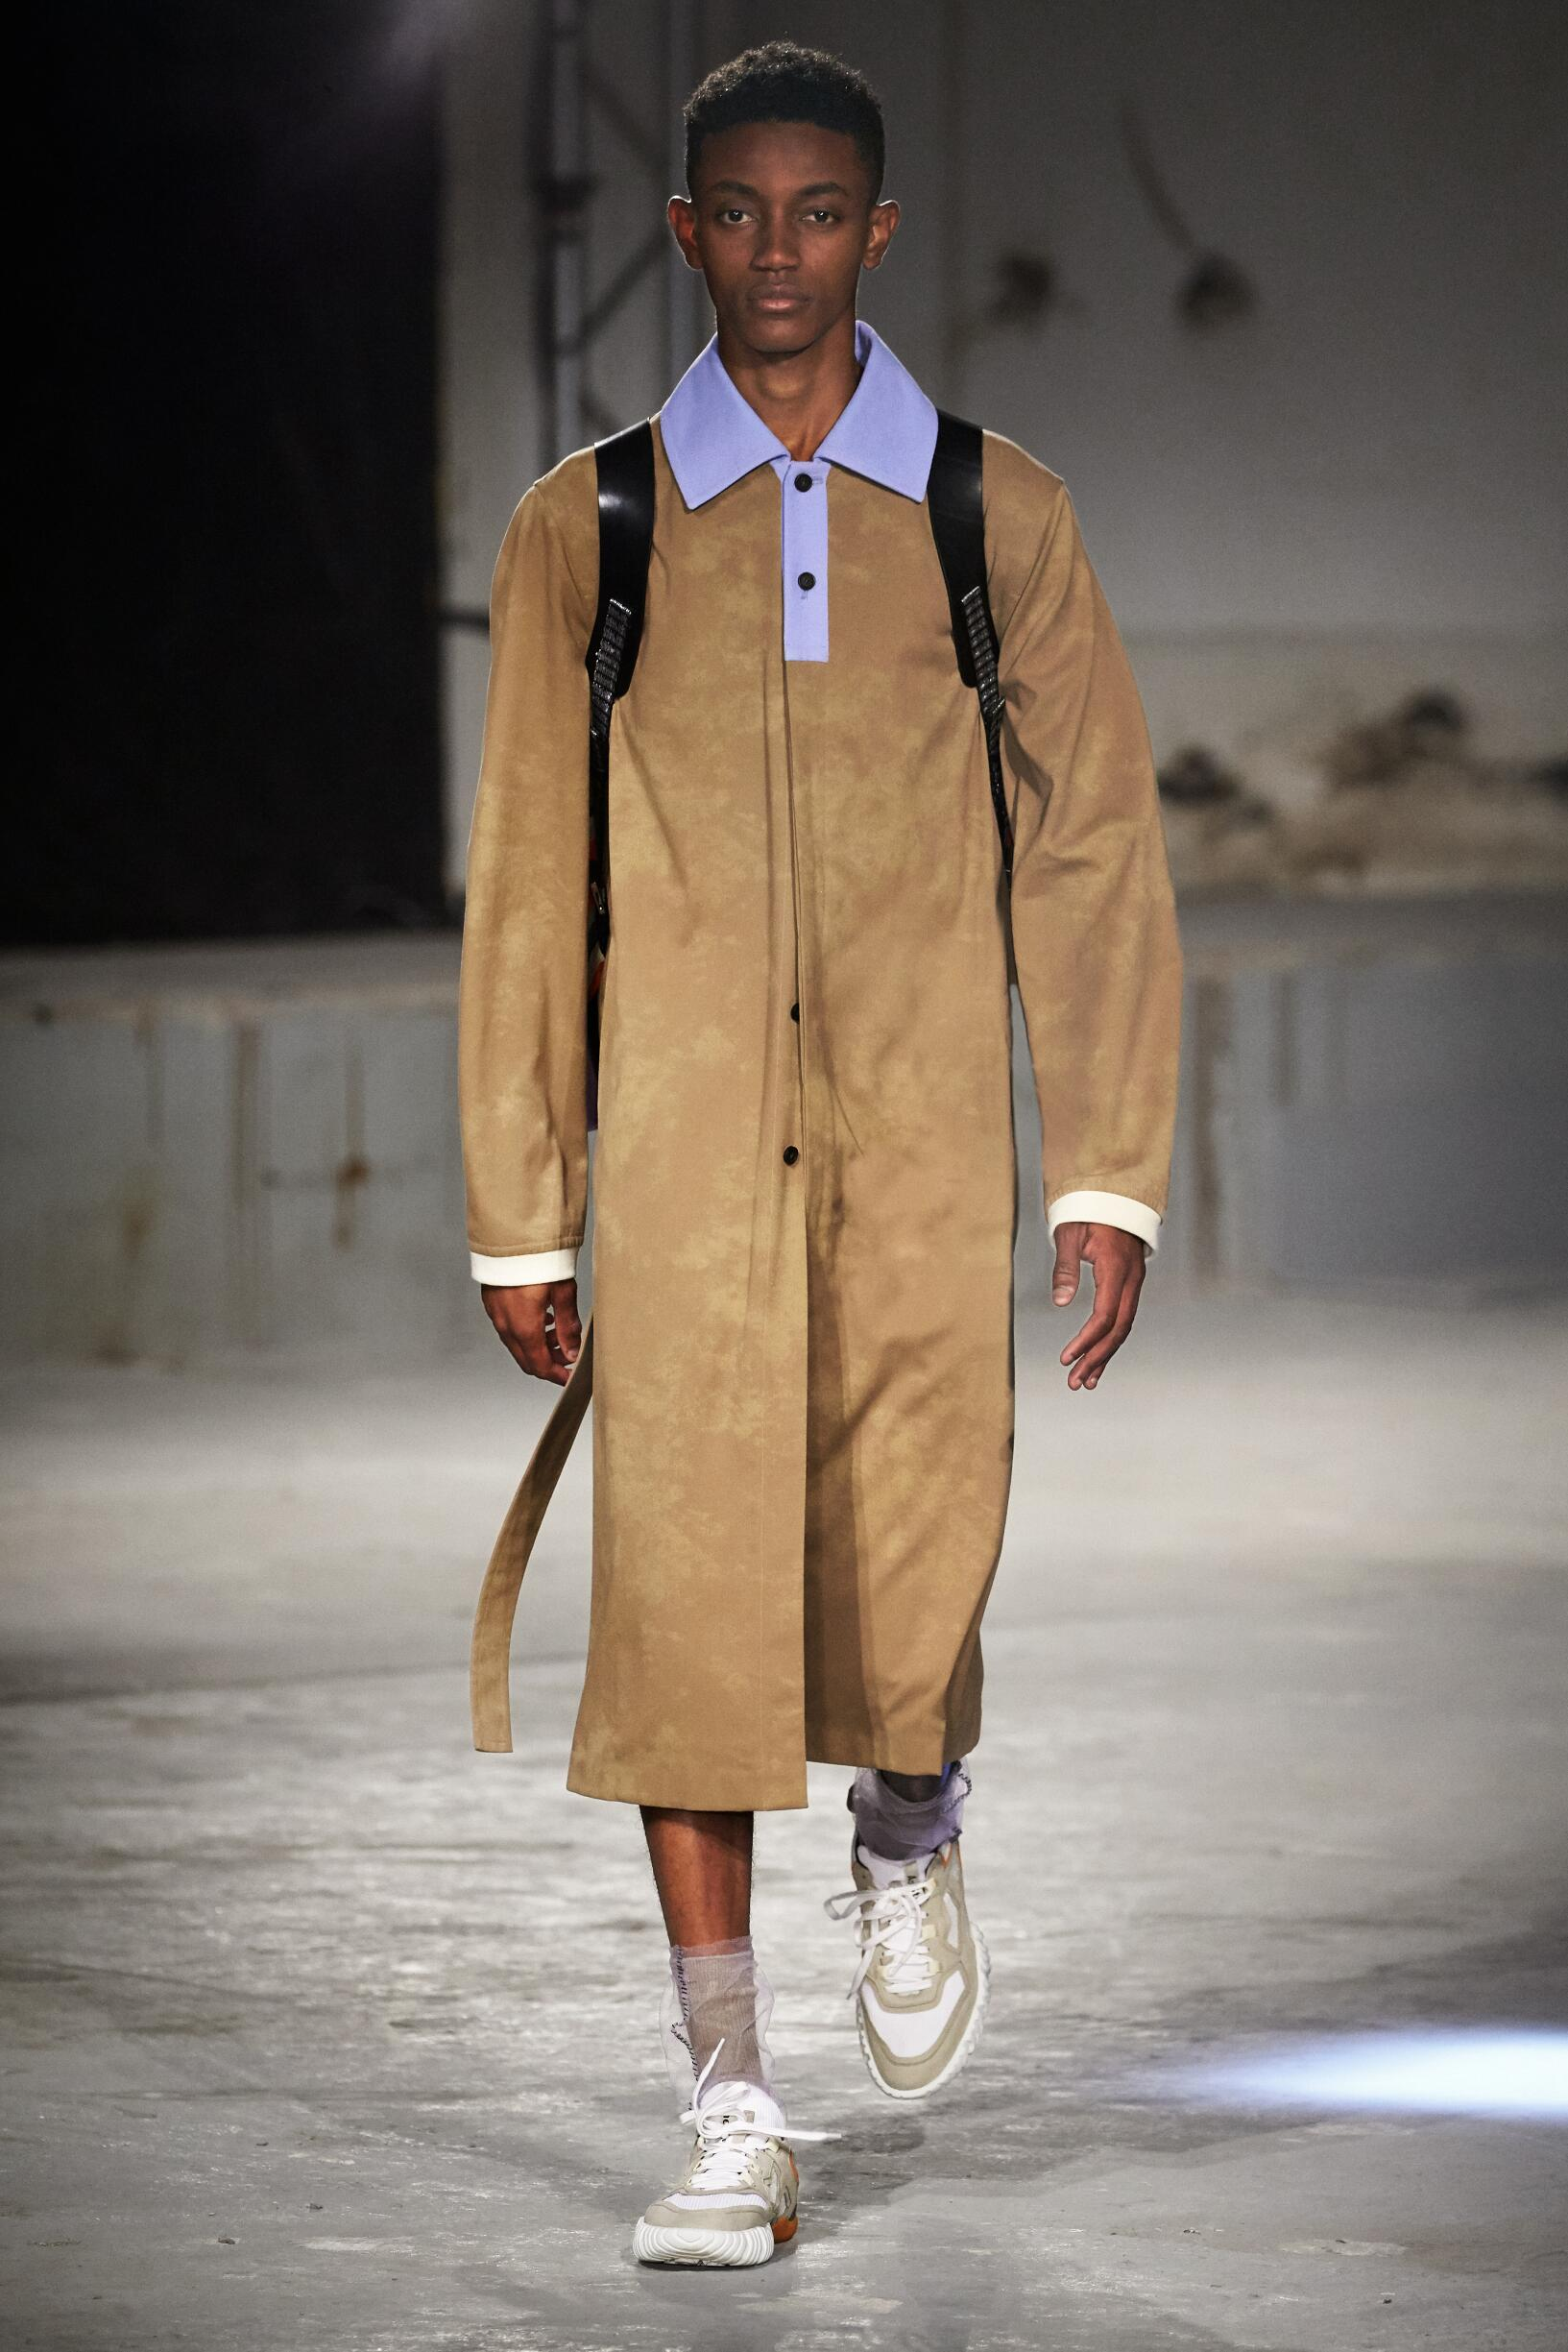 2019 Acne Studios Summer Catwalk